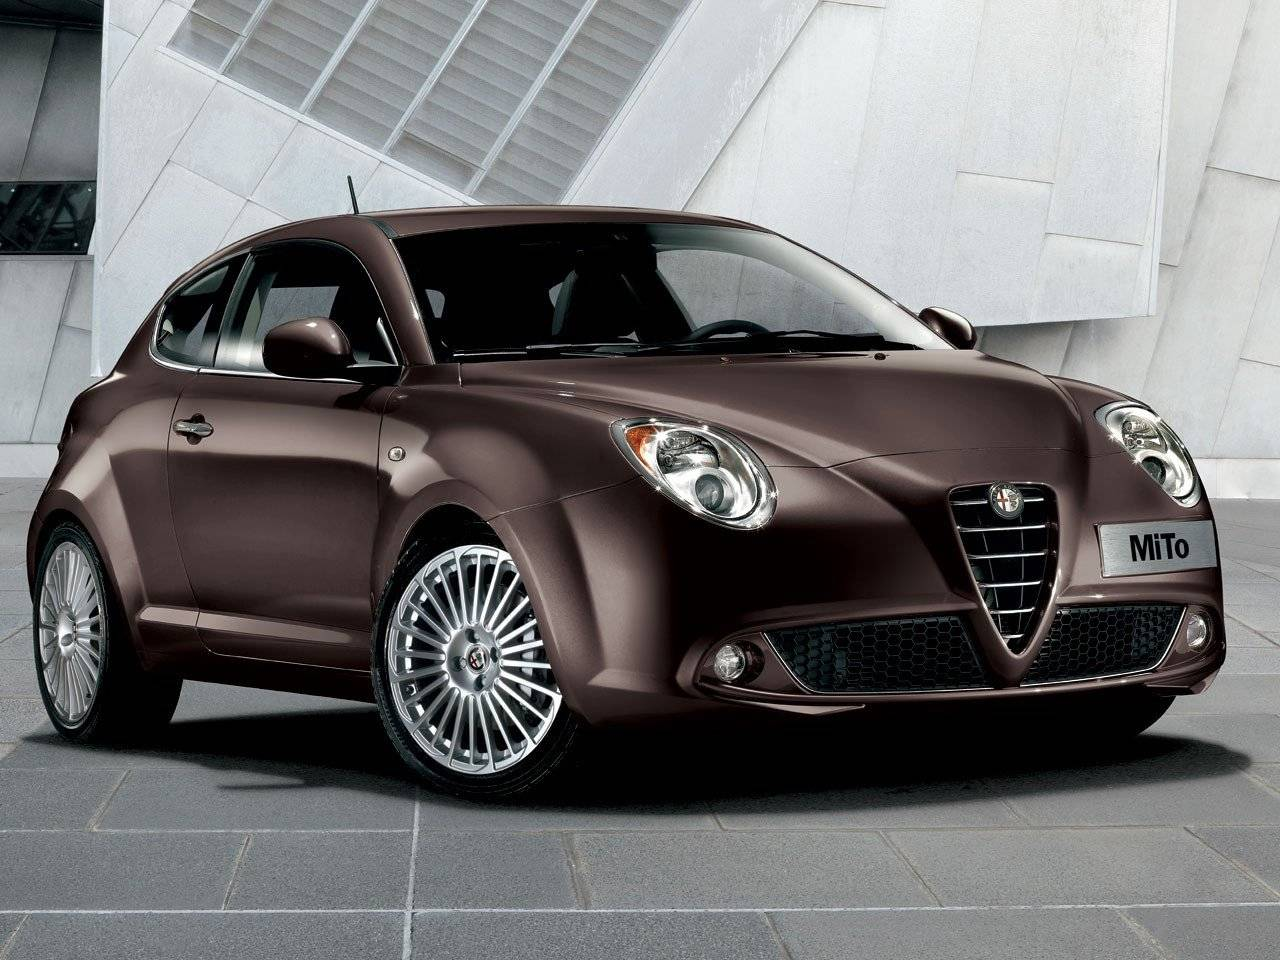 alfa romeo prijst mito turbo twinair autonieuws. Black Bedroom Furniture Sets. Home Design Ideas